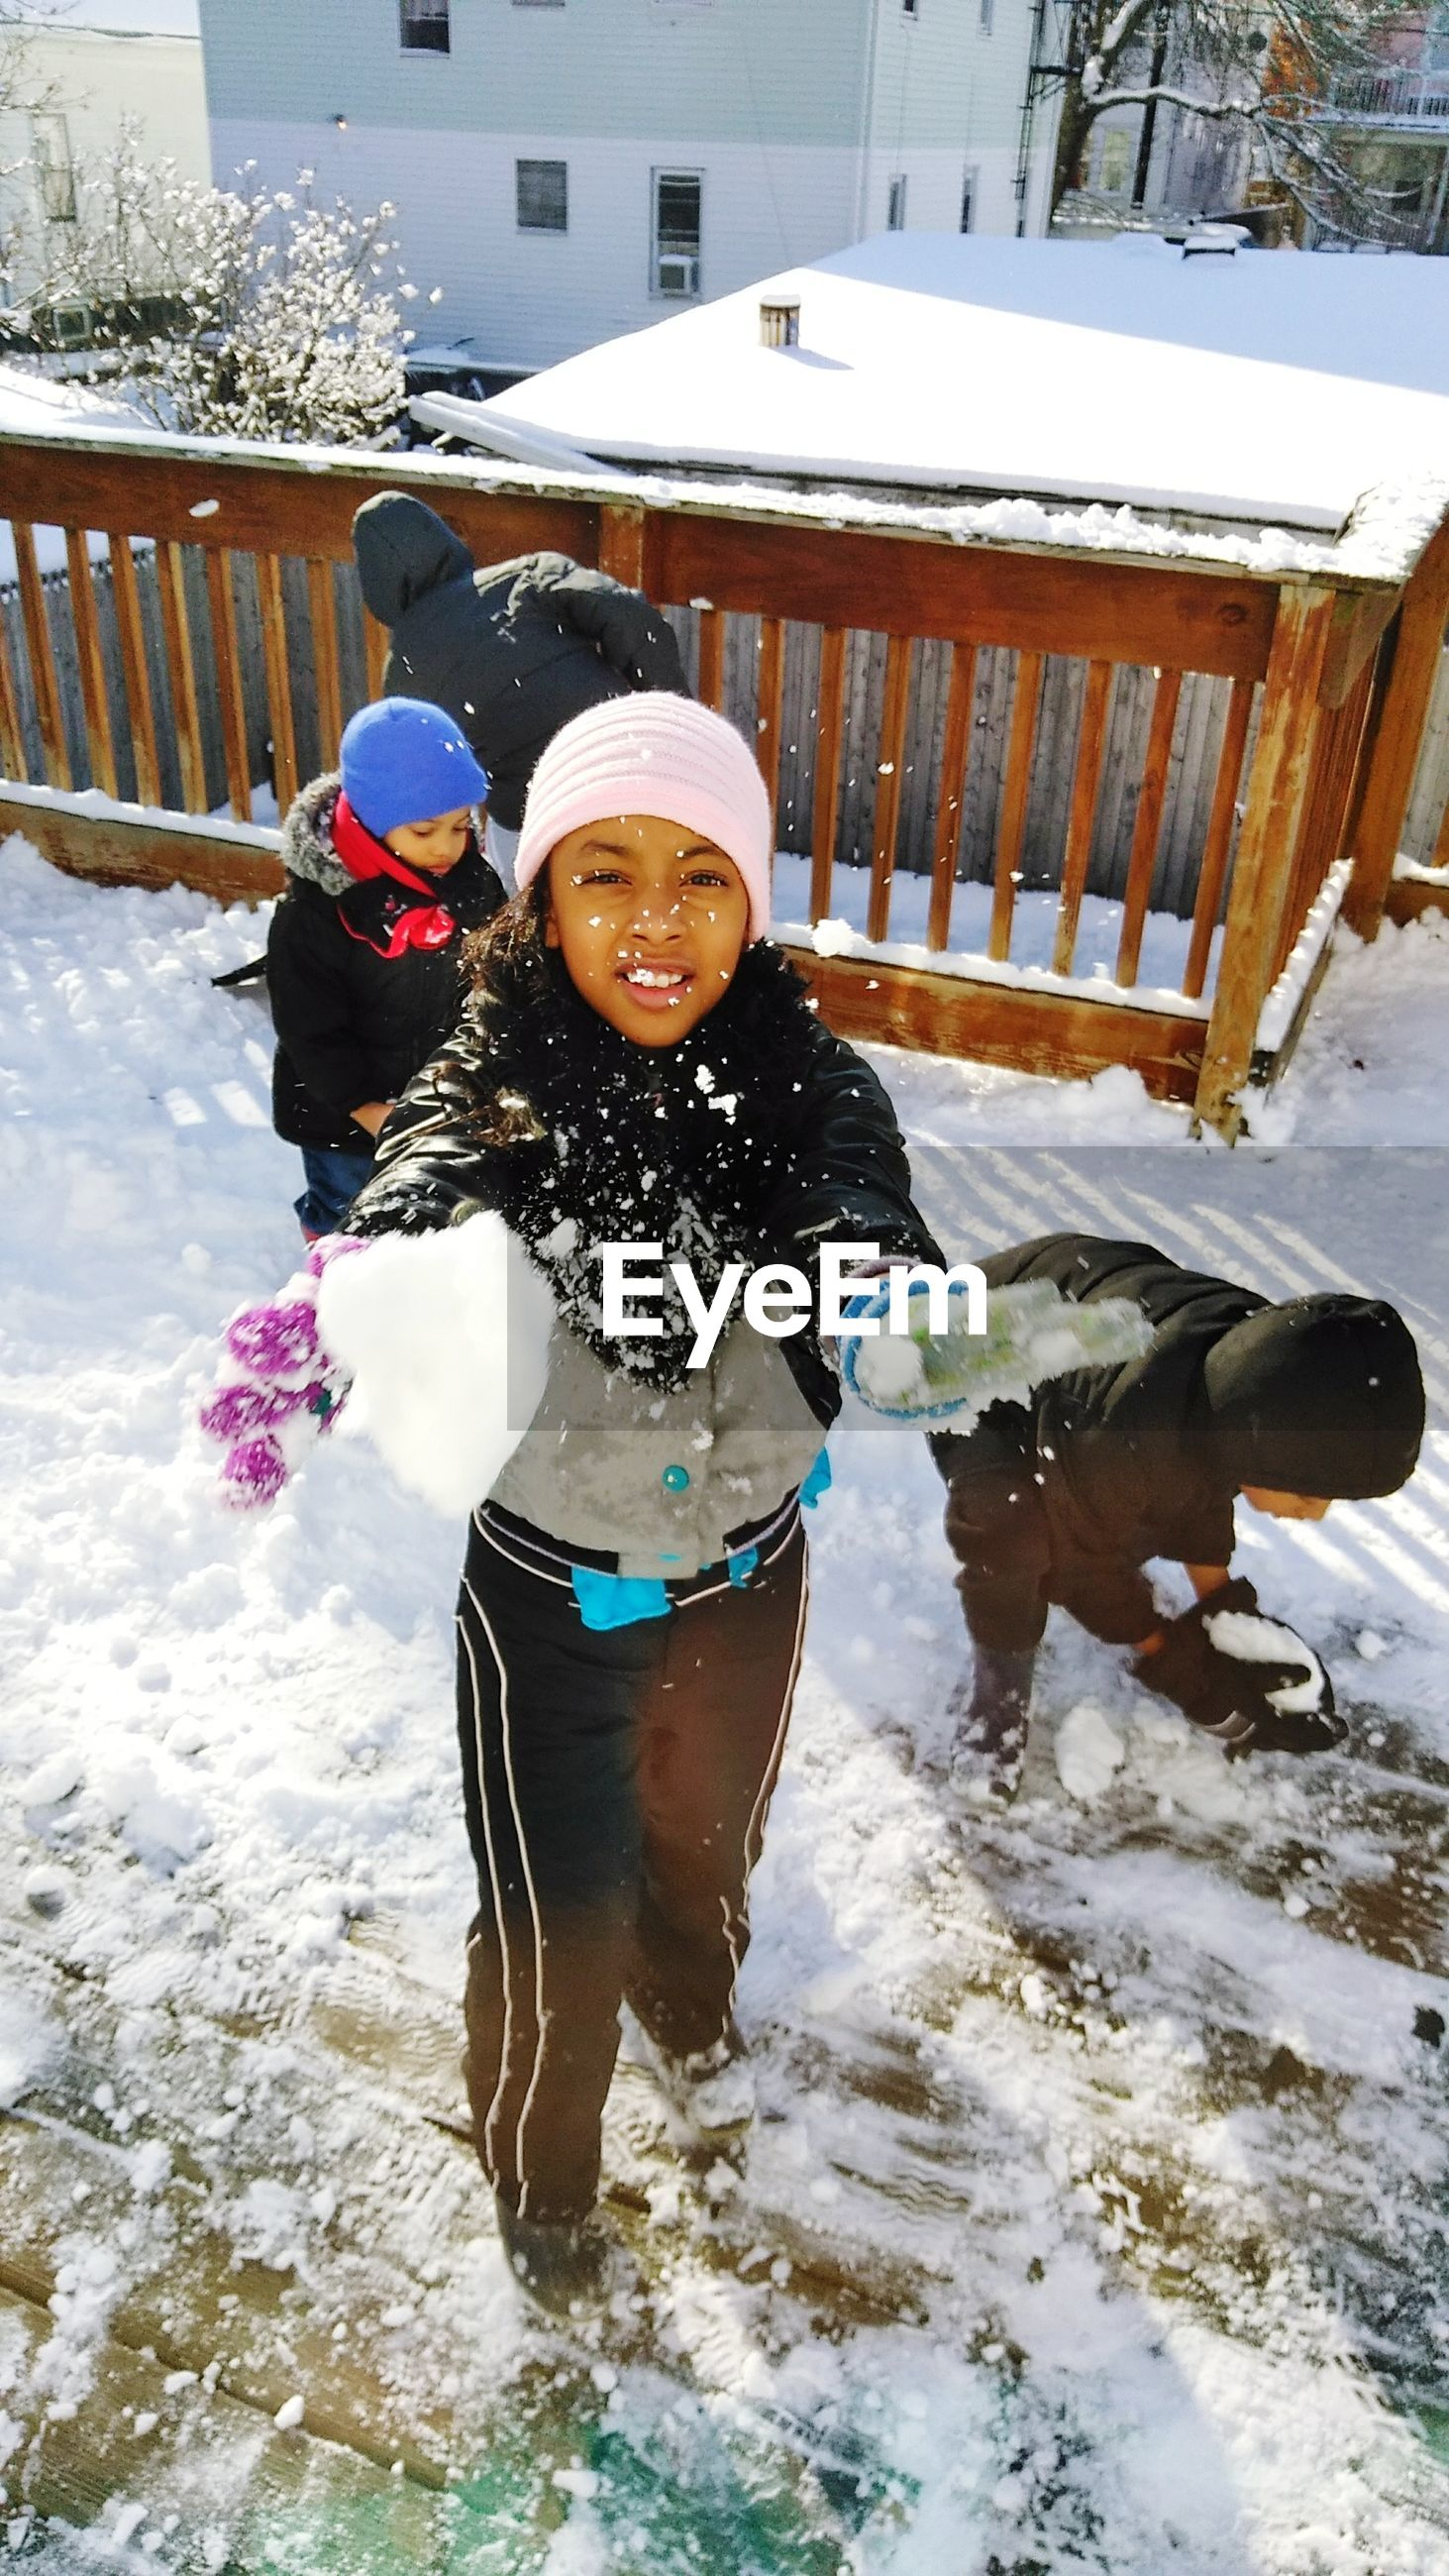 Siblings playing with snow during winter